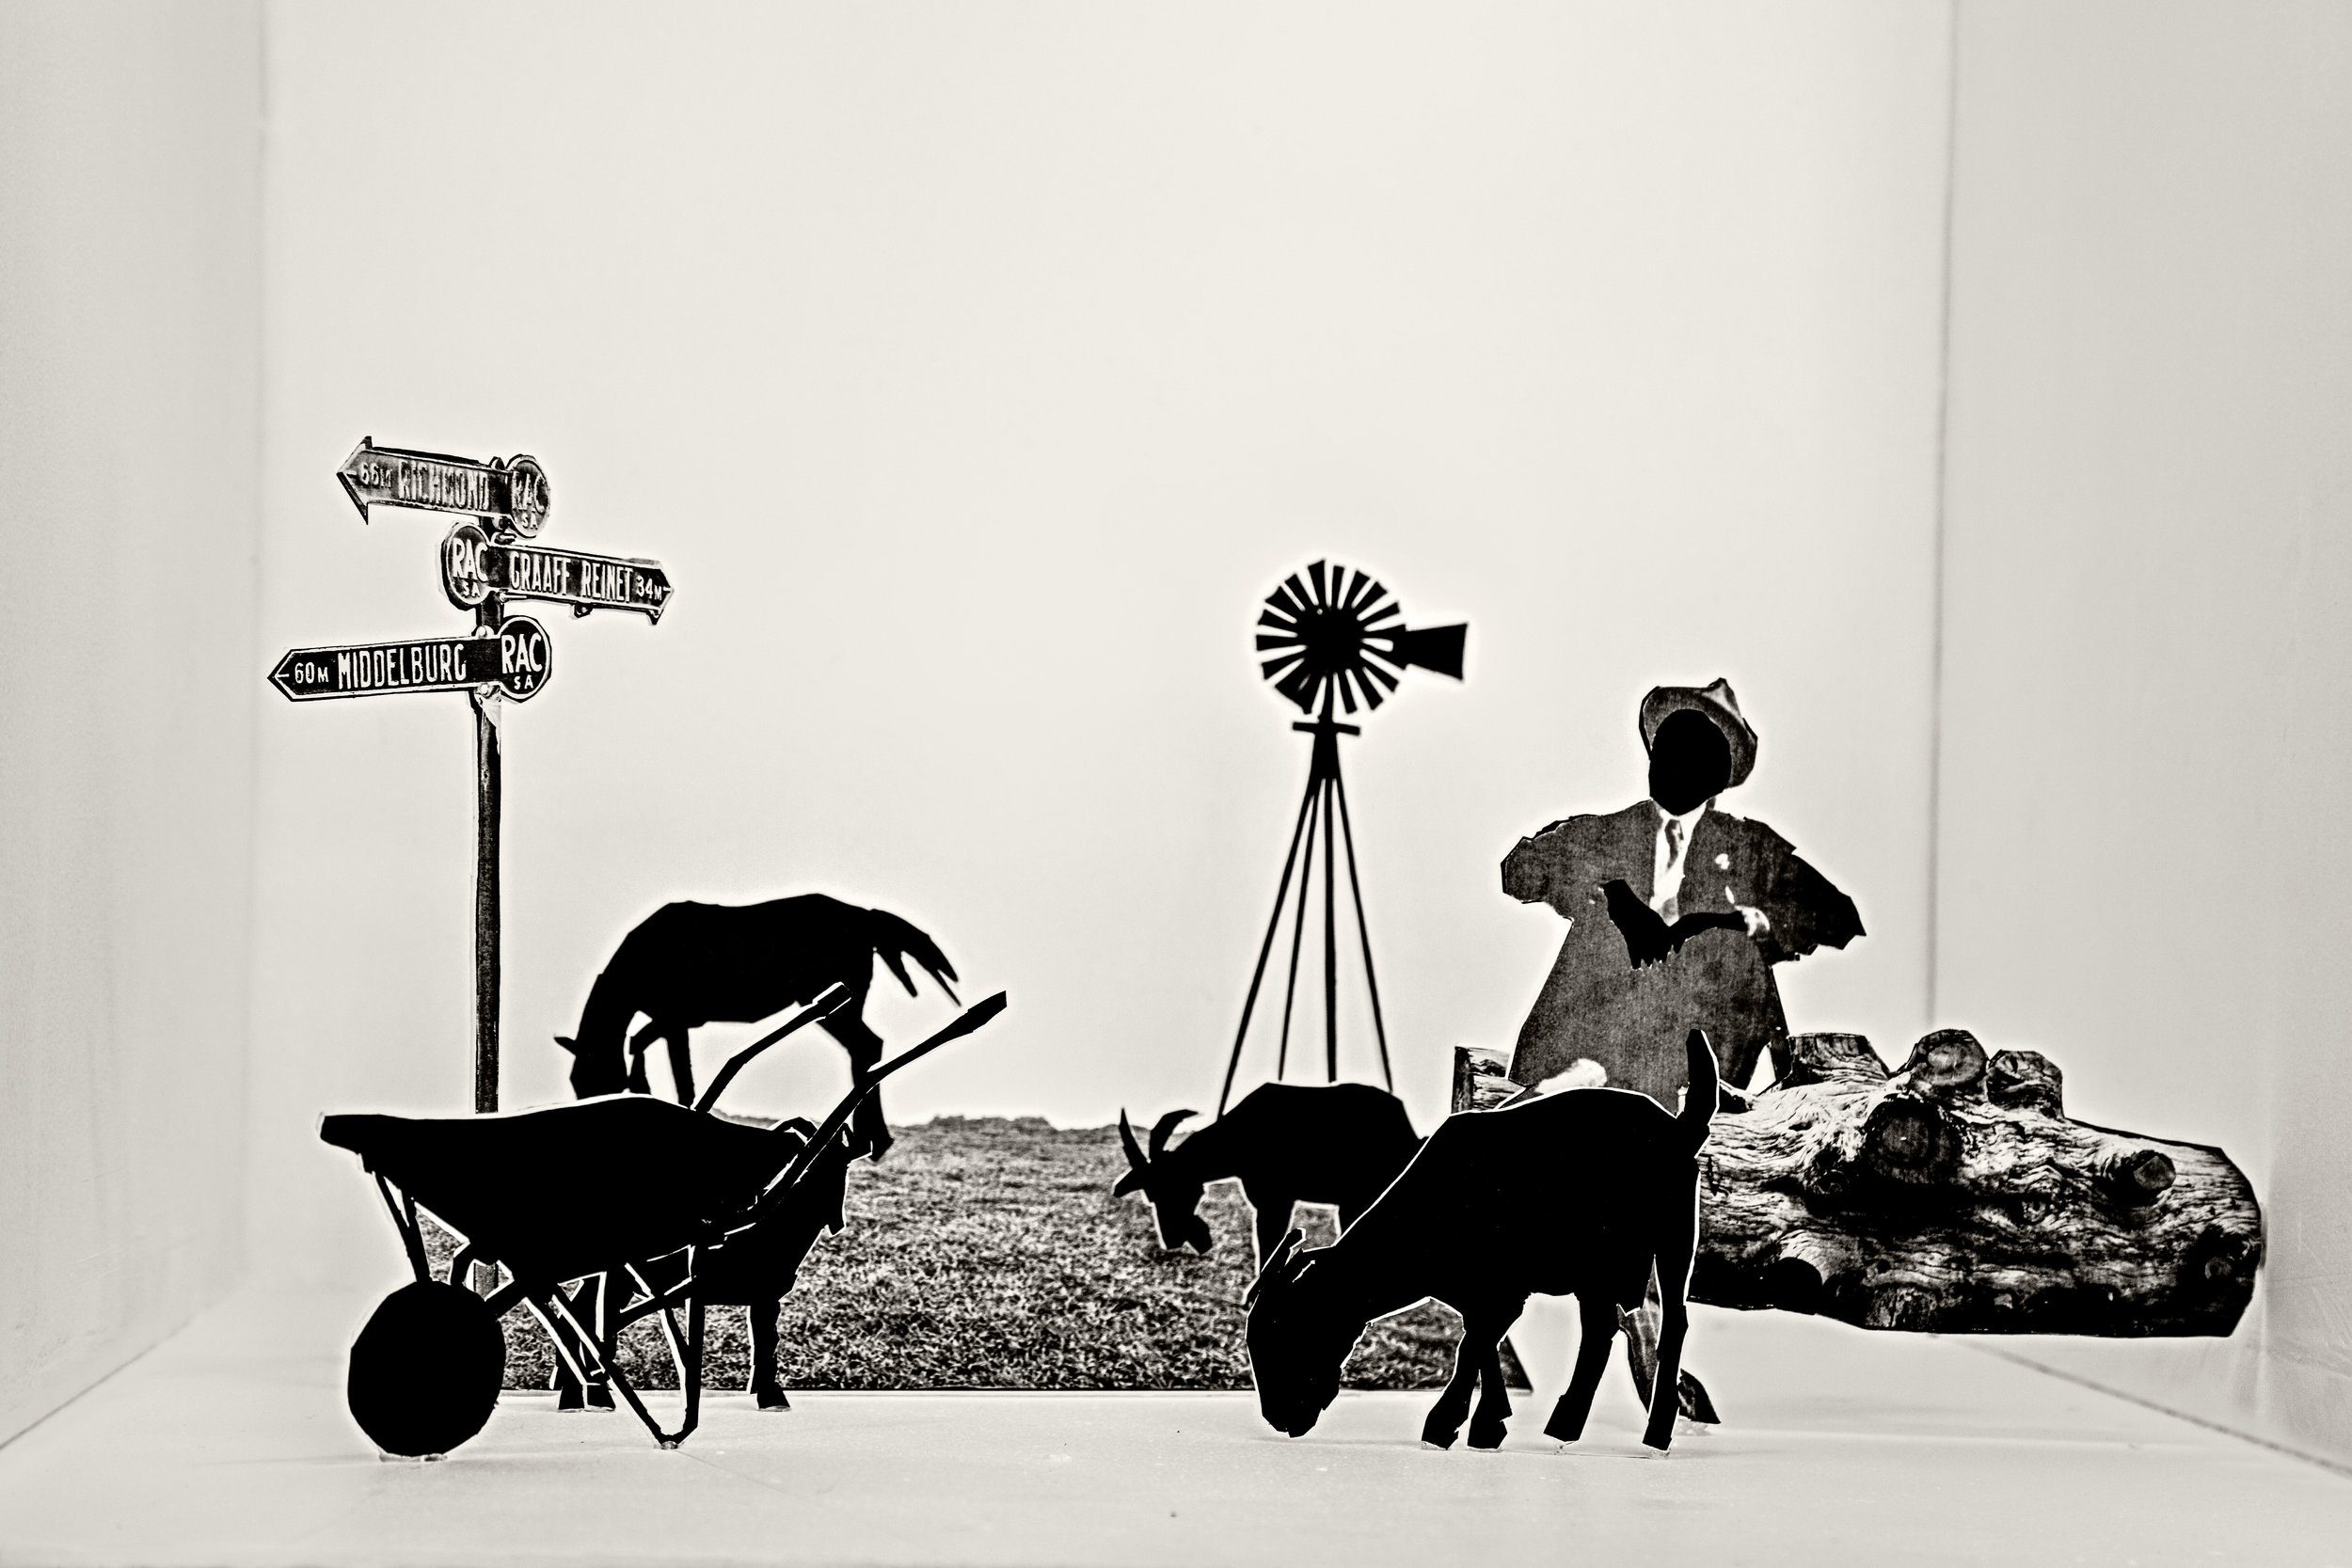 LEBOHANG KGANYE  Helen's father grazing his goats , 2018, Inspired by Maverick by Lauren Beukes and Nechama Brodie, Inkjet print on cotton rag paper, 25 x 35 inches; 64 x 90 cm, Edition 3/5 Courtesy AFRONOVA GALLERY